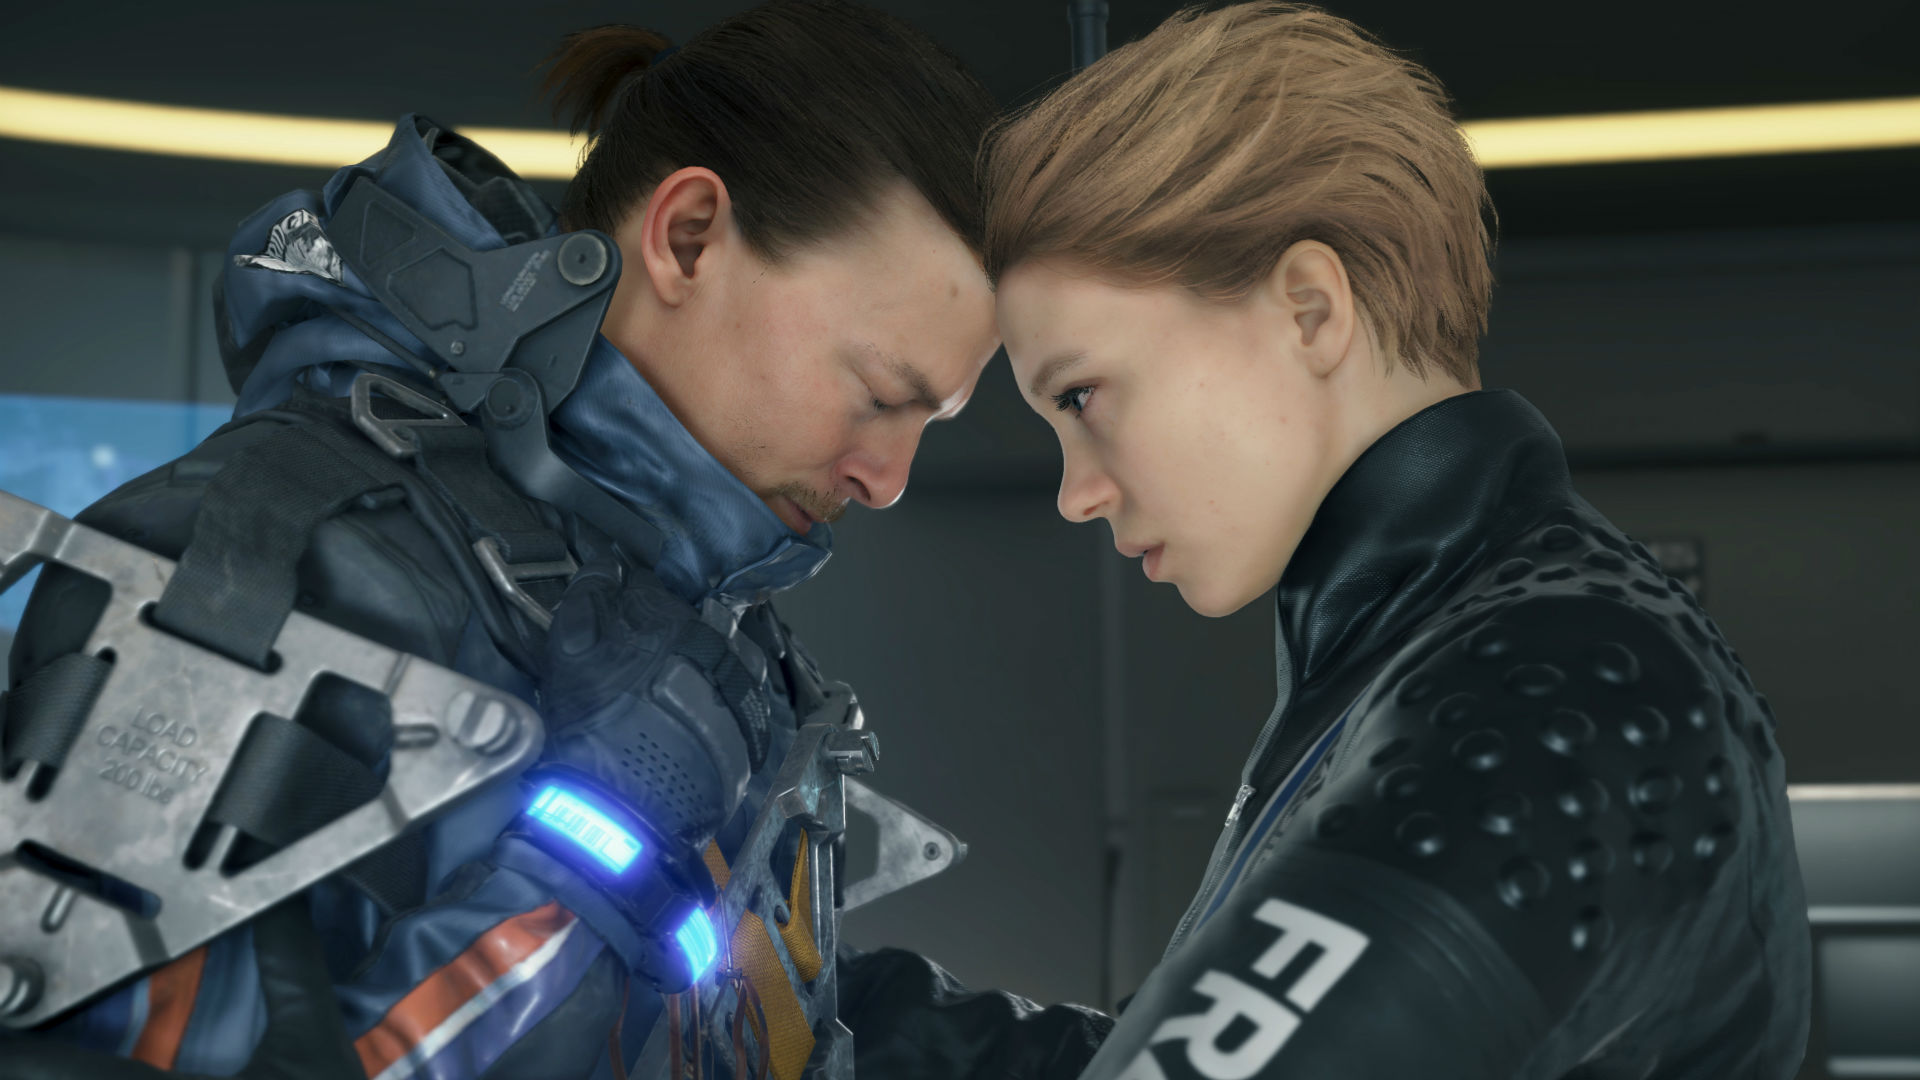 death stranding review roundup